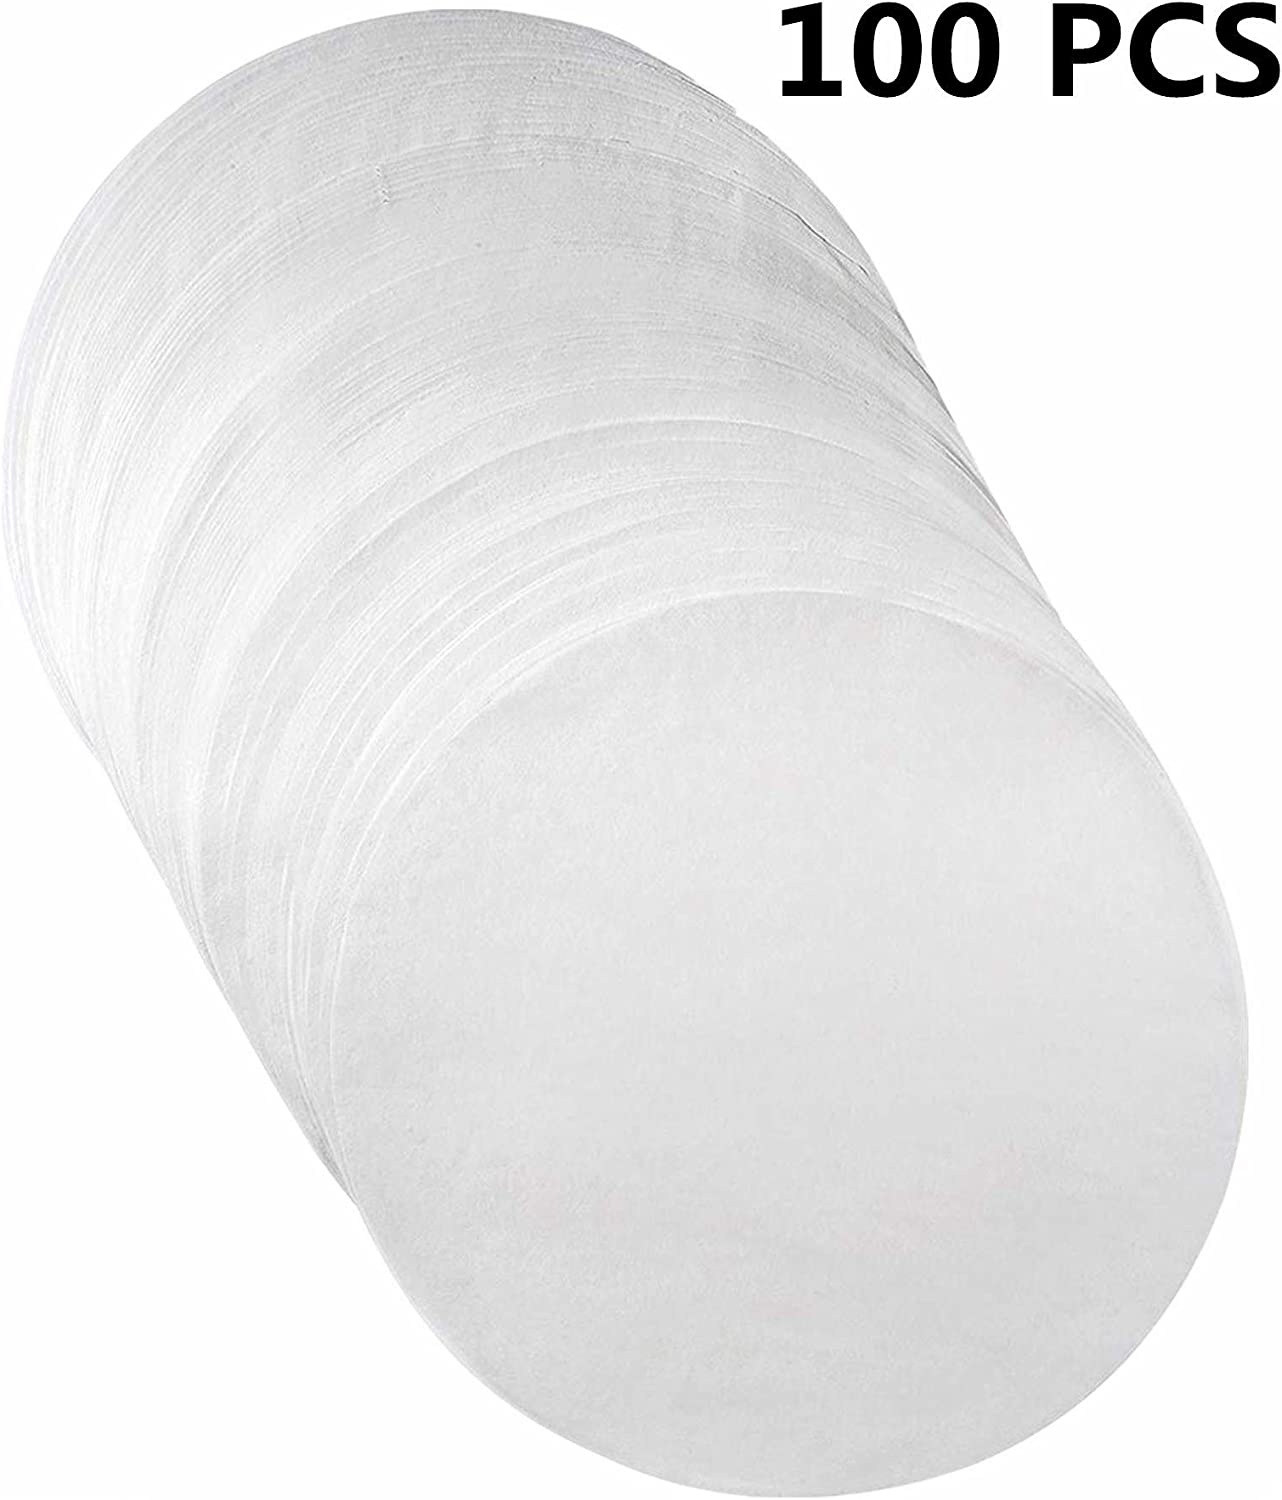 Parchment Paper Baking Circles - 9 inch - 100 Eco-Friendly Pack - Baking Paper Liners, Cooking,Oven, Air Fryer, Cheesecake and Round Cake Pans